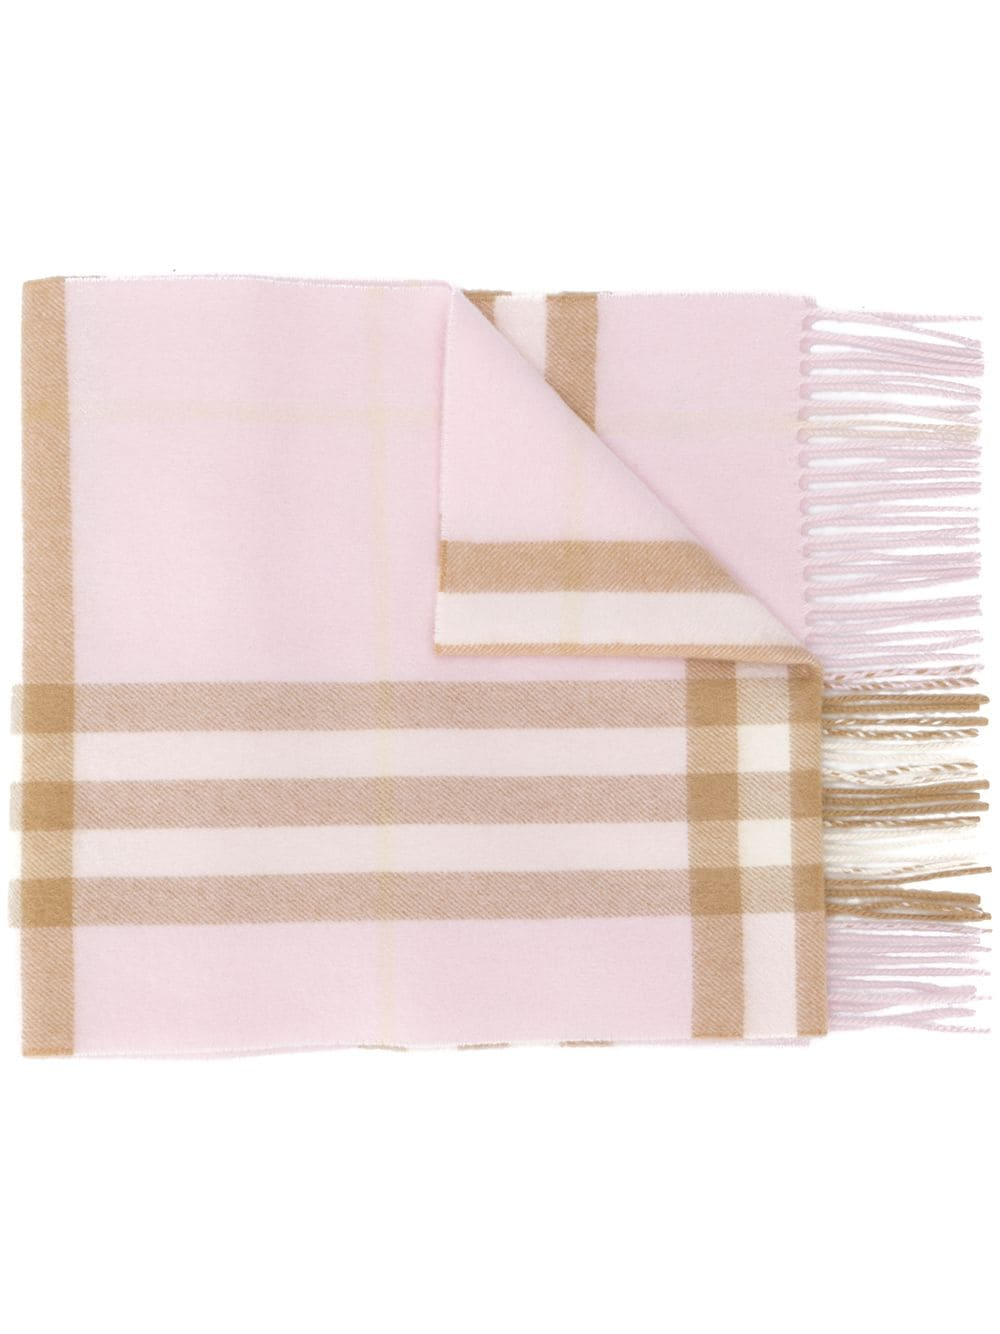 Burberry cashmere check scarf - PINK von Burberry